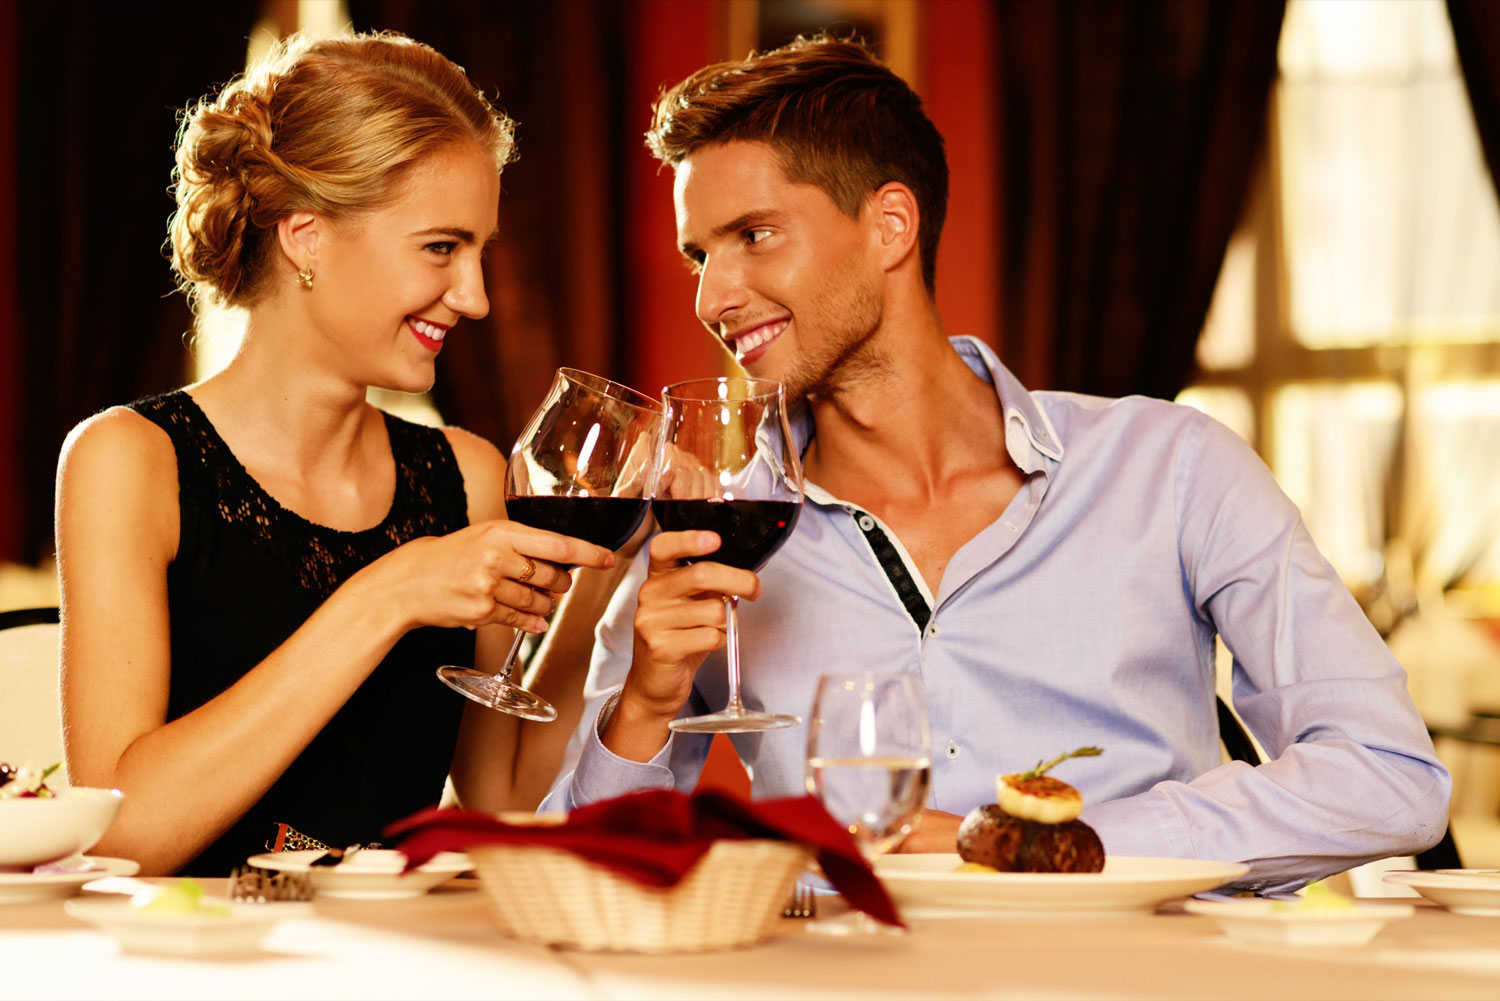 couple-wine